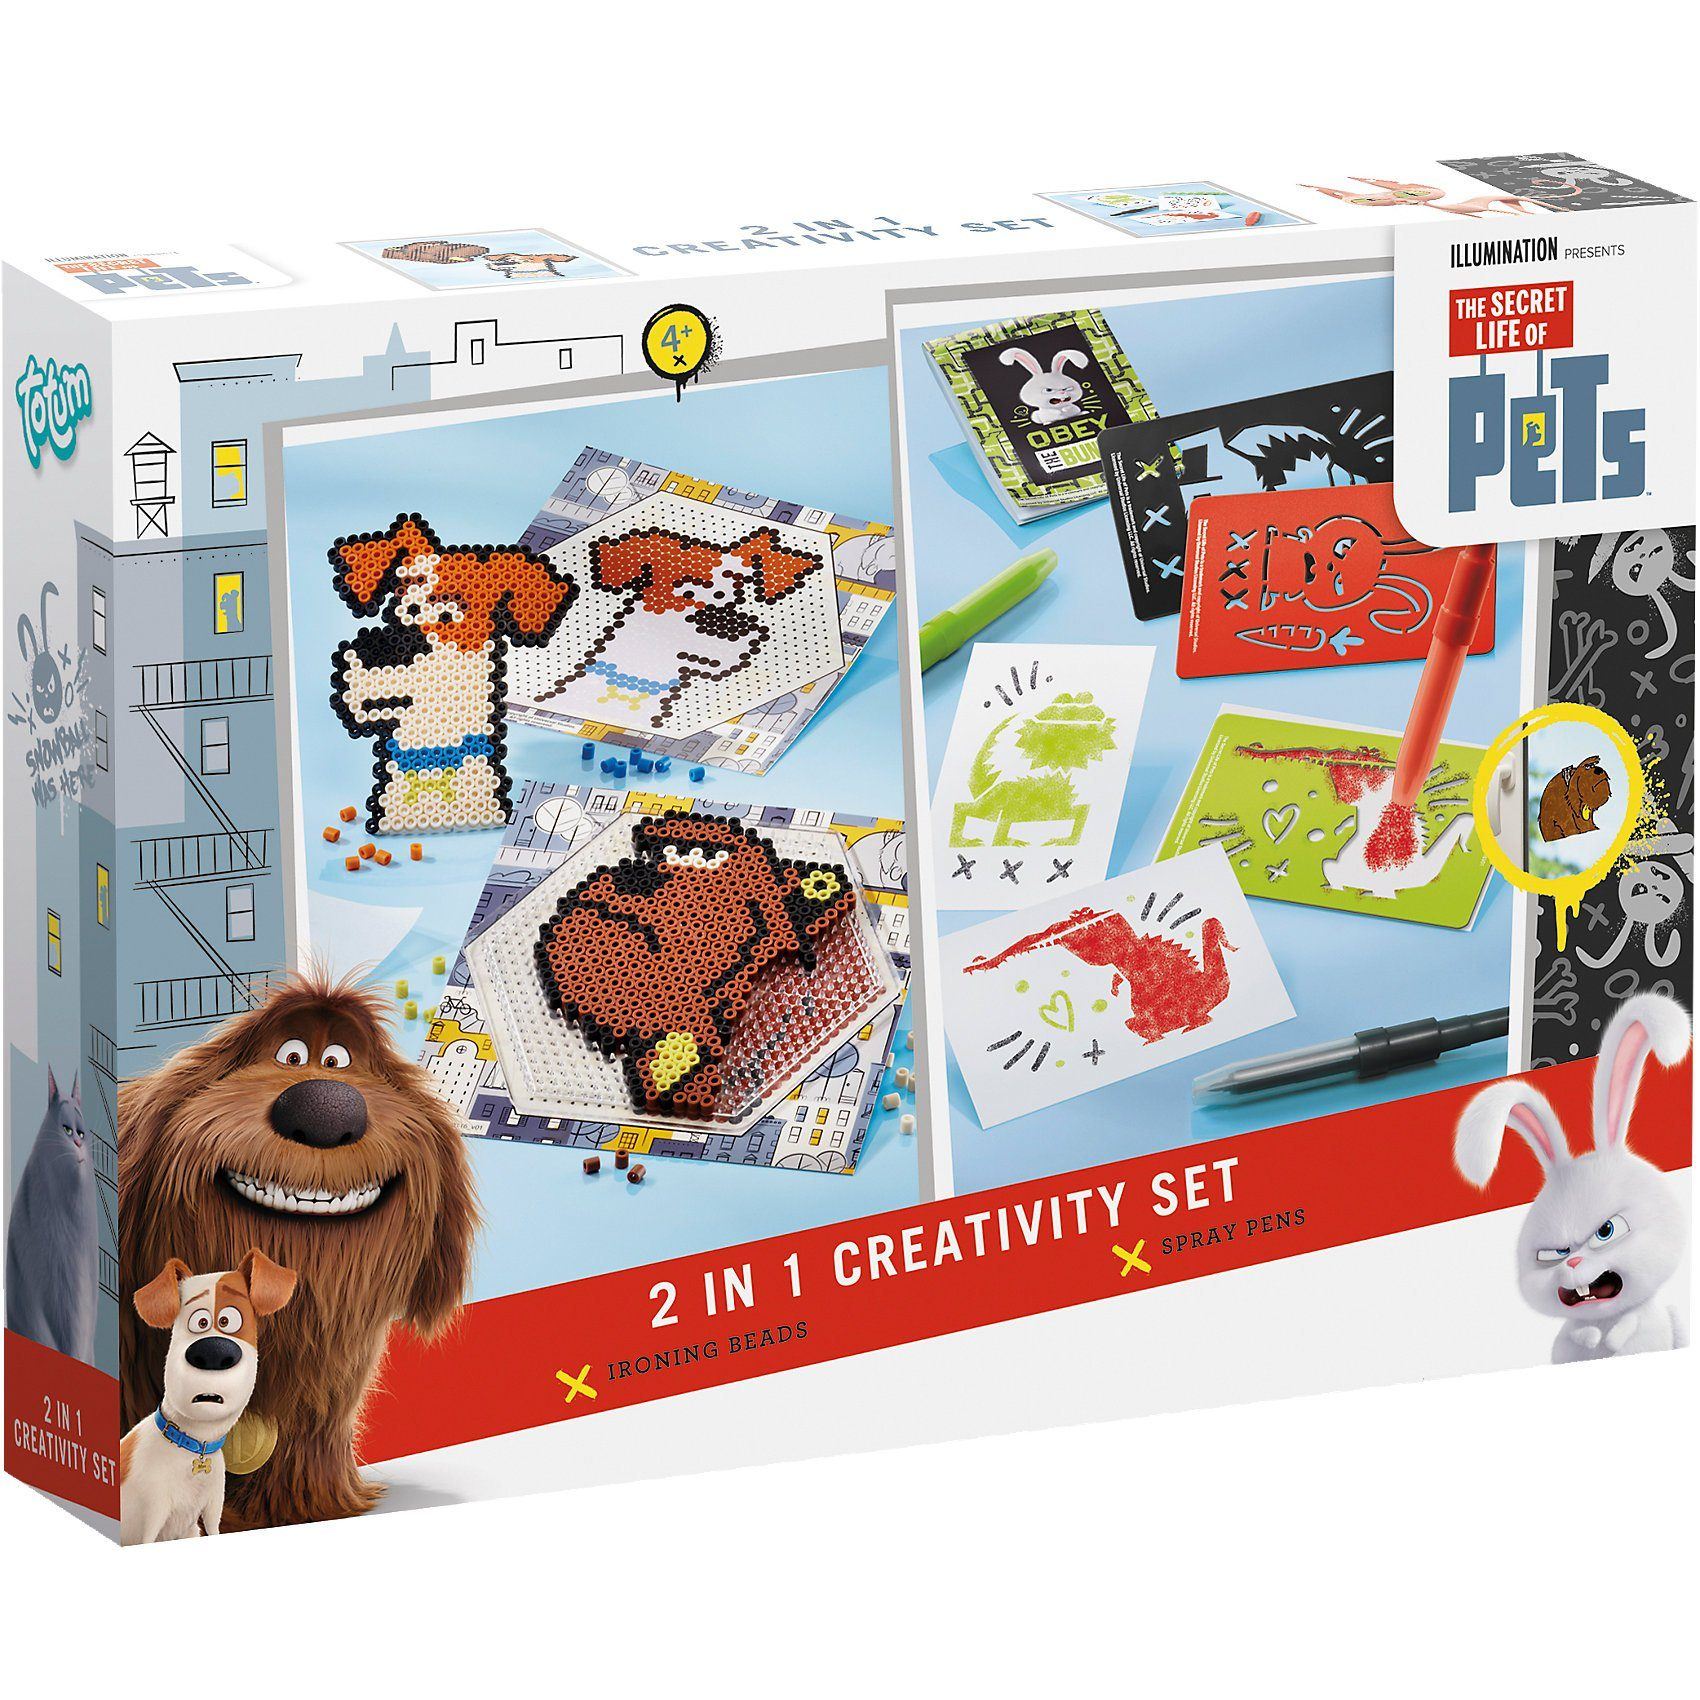 TOTUM Secret Life of Pets 2 in 1 Creativity Set